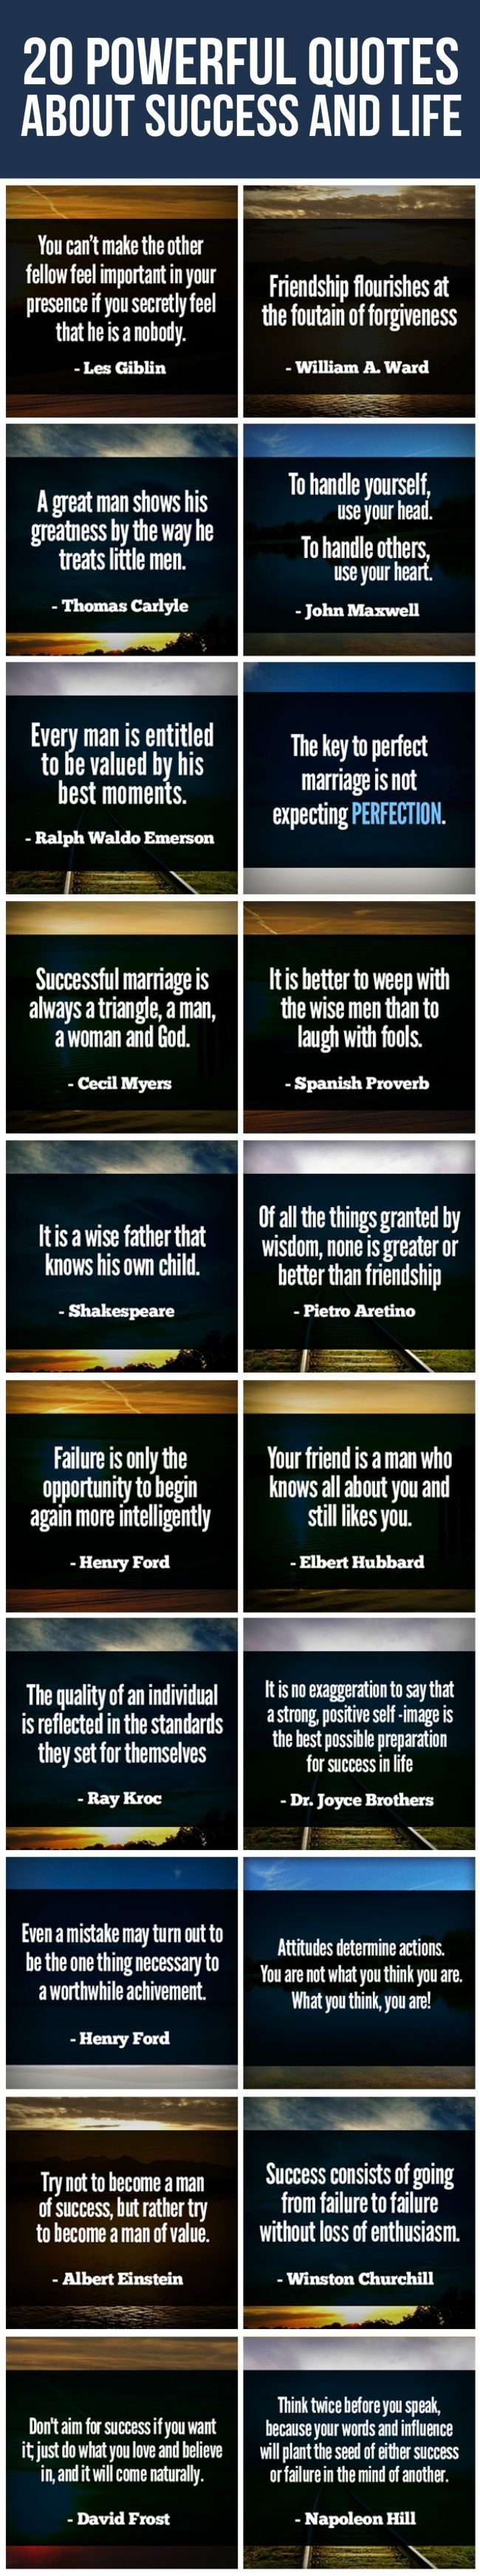 20 Awesome and Powerful Quotes about Success and Life https://www.tlcforcoaches.com/quotes/